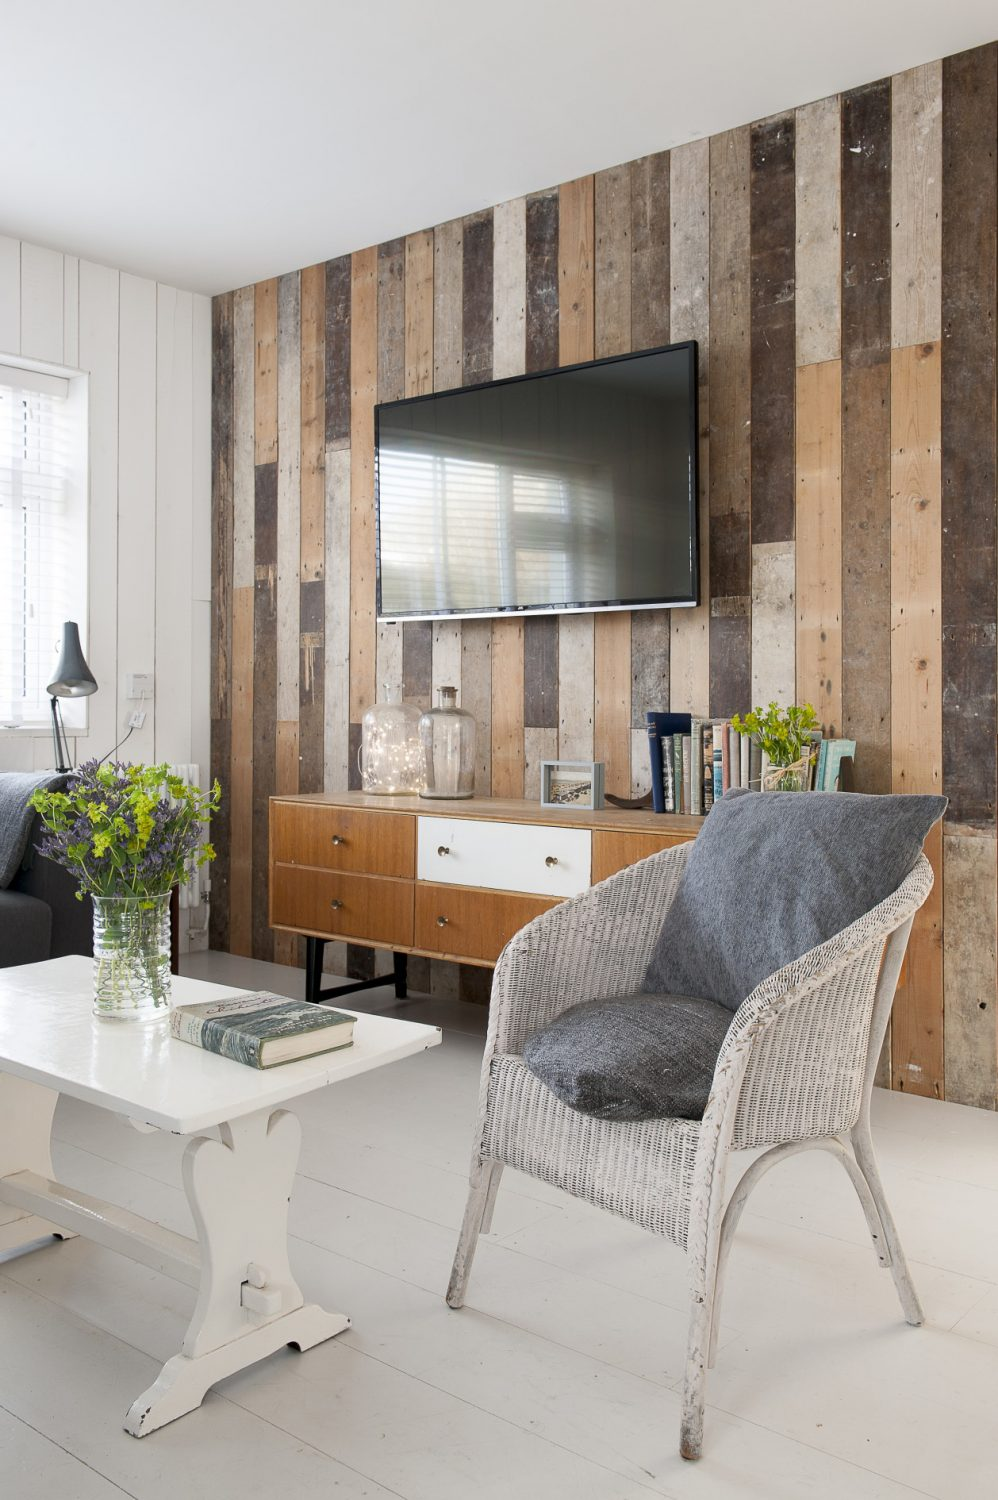 Nicola wanted each room in the house to feature one wall clad in reclaimed floorboards